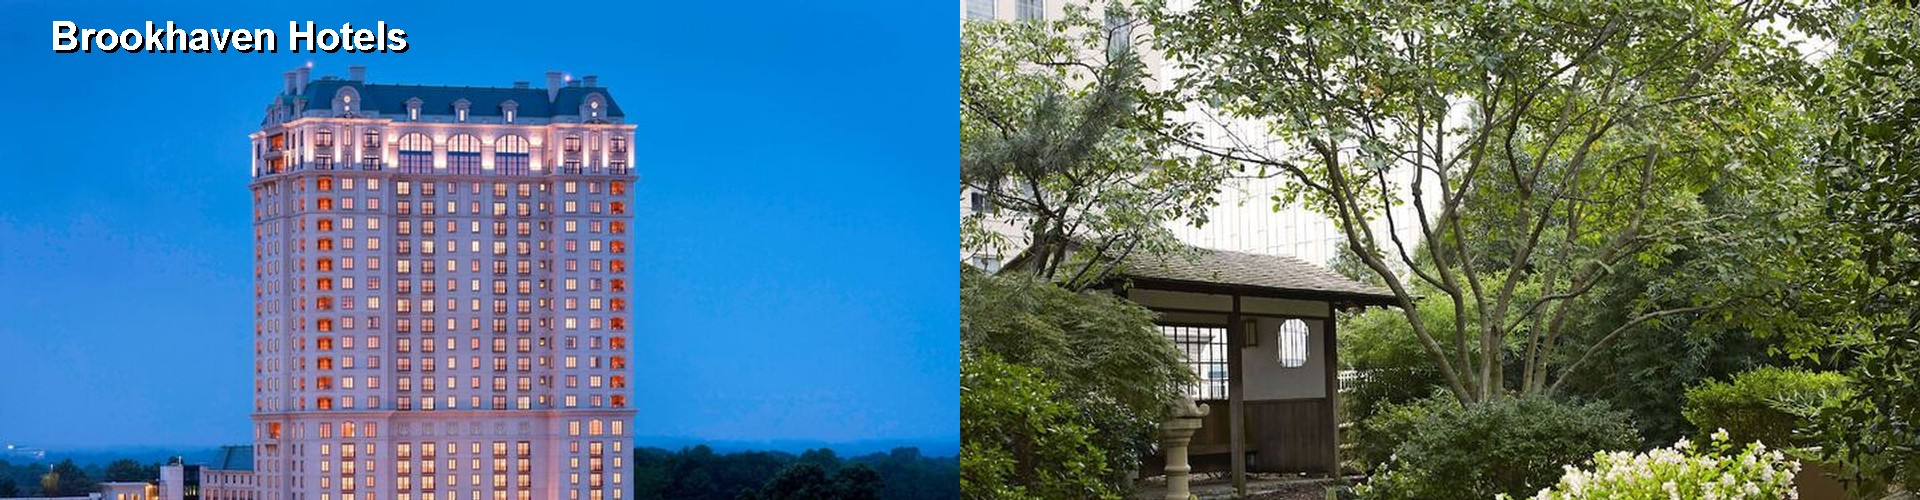 5 Best Hotels near Brookhaven